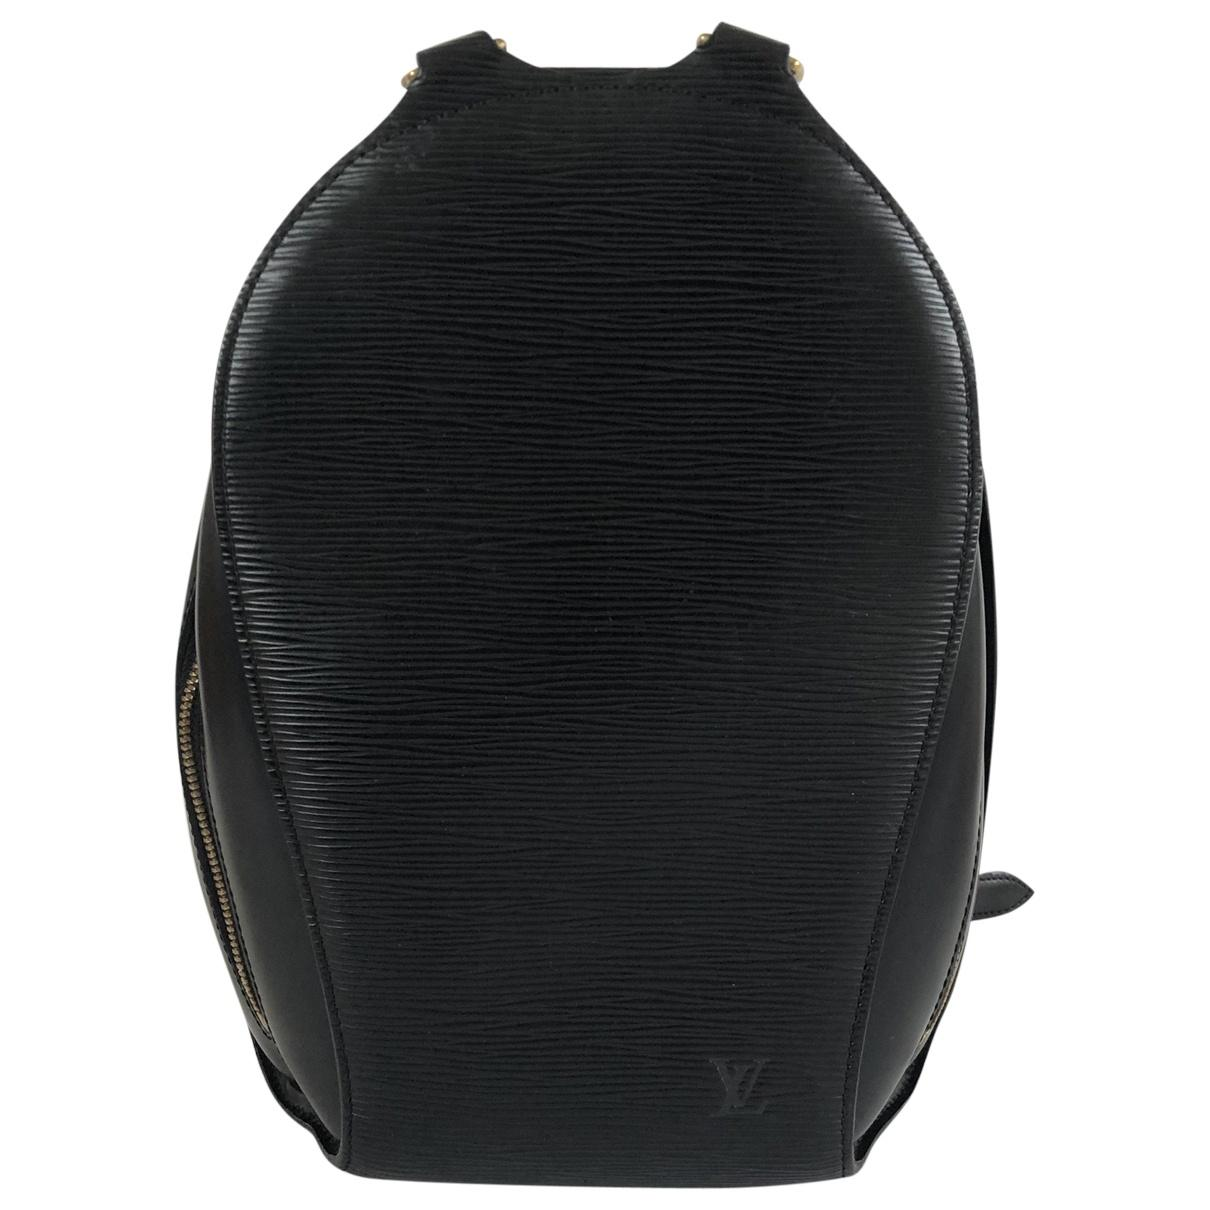 Lyst - Louis Vuitton Vintage Montsouris Black Leather Backpacks in Black ab29e0b3039f6